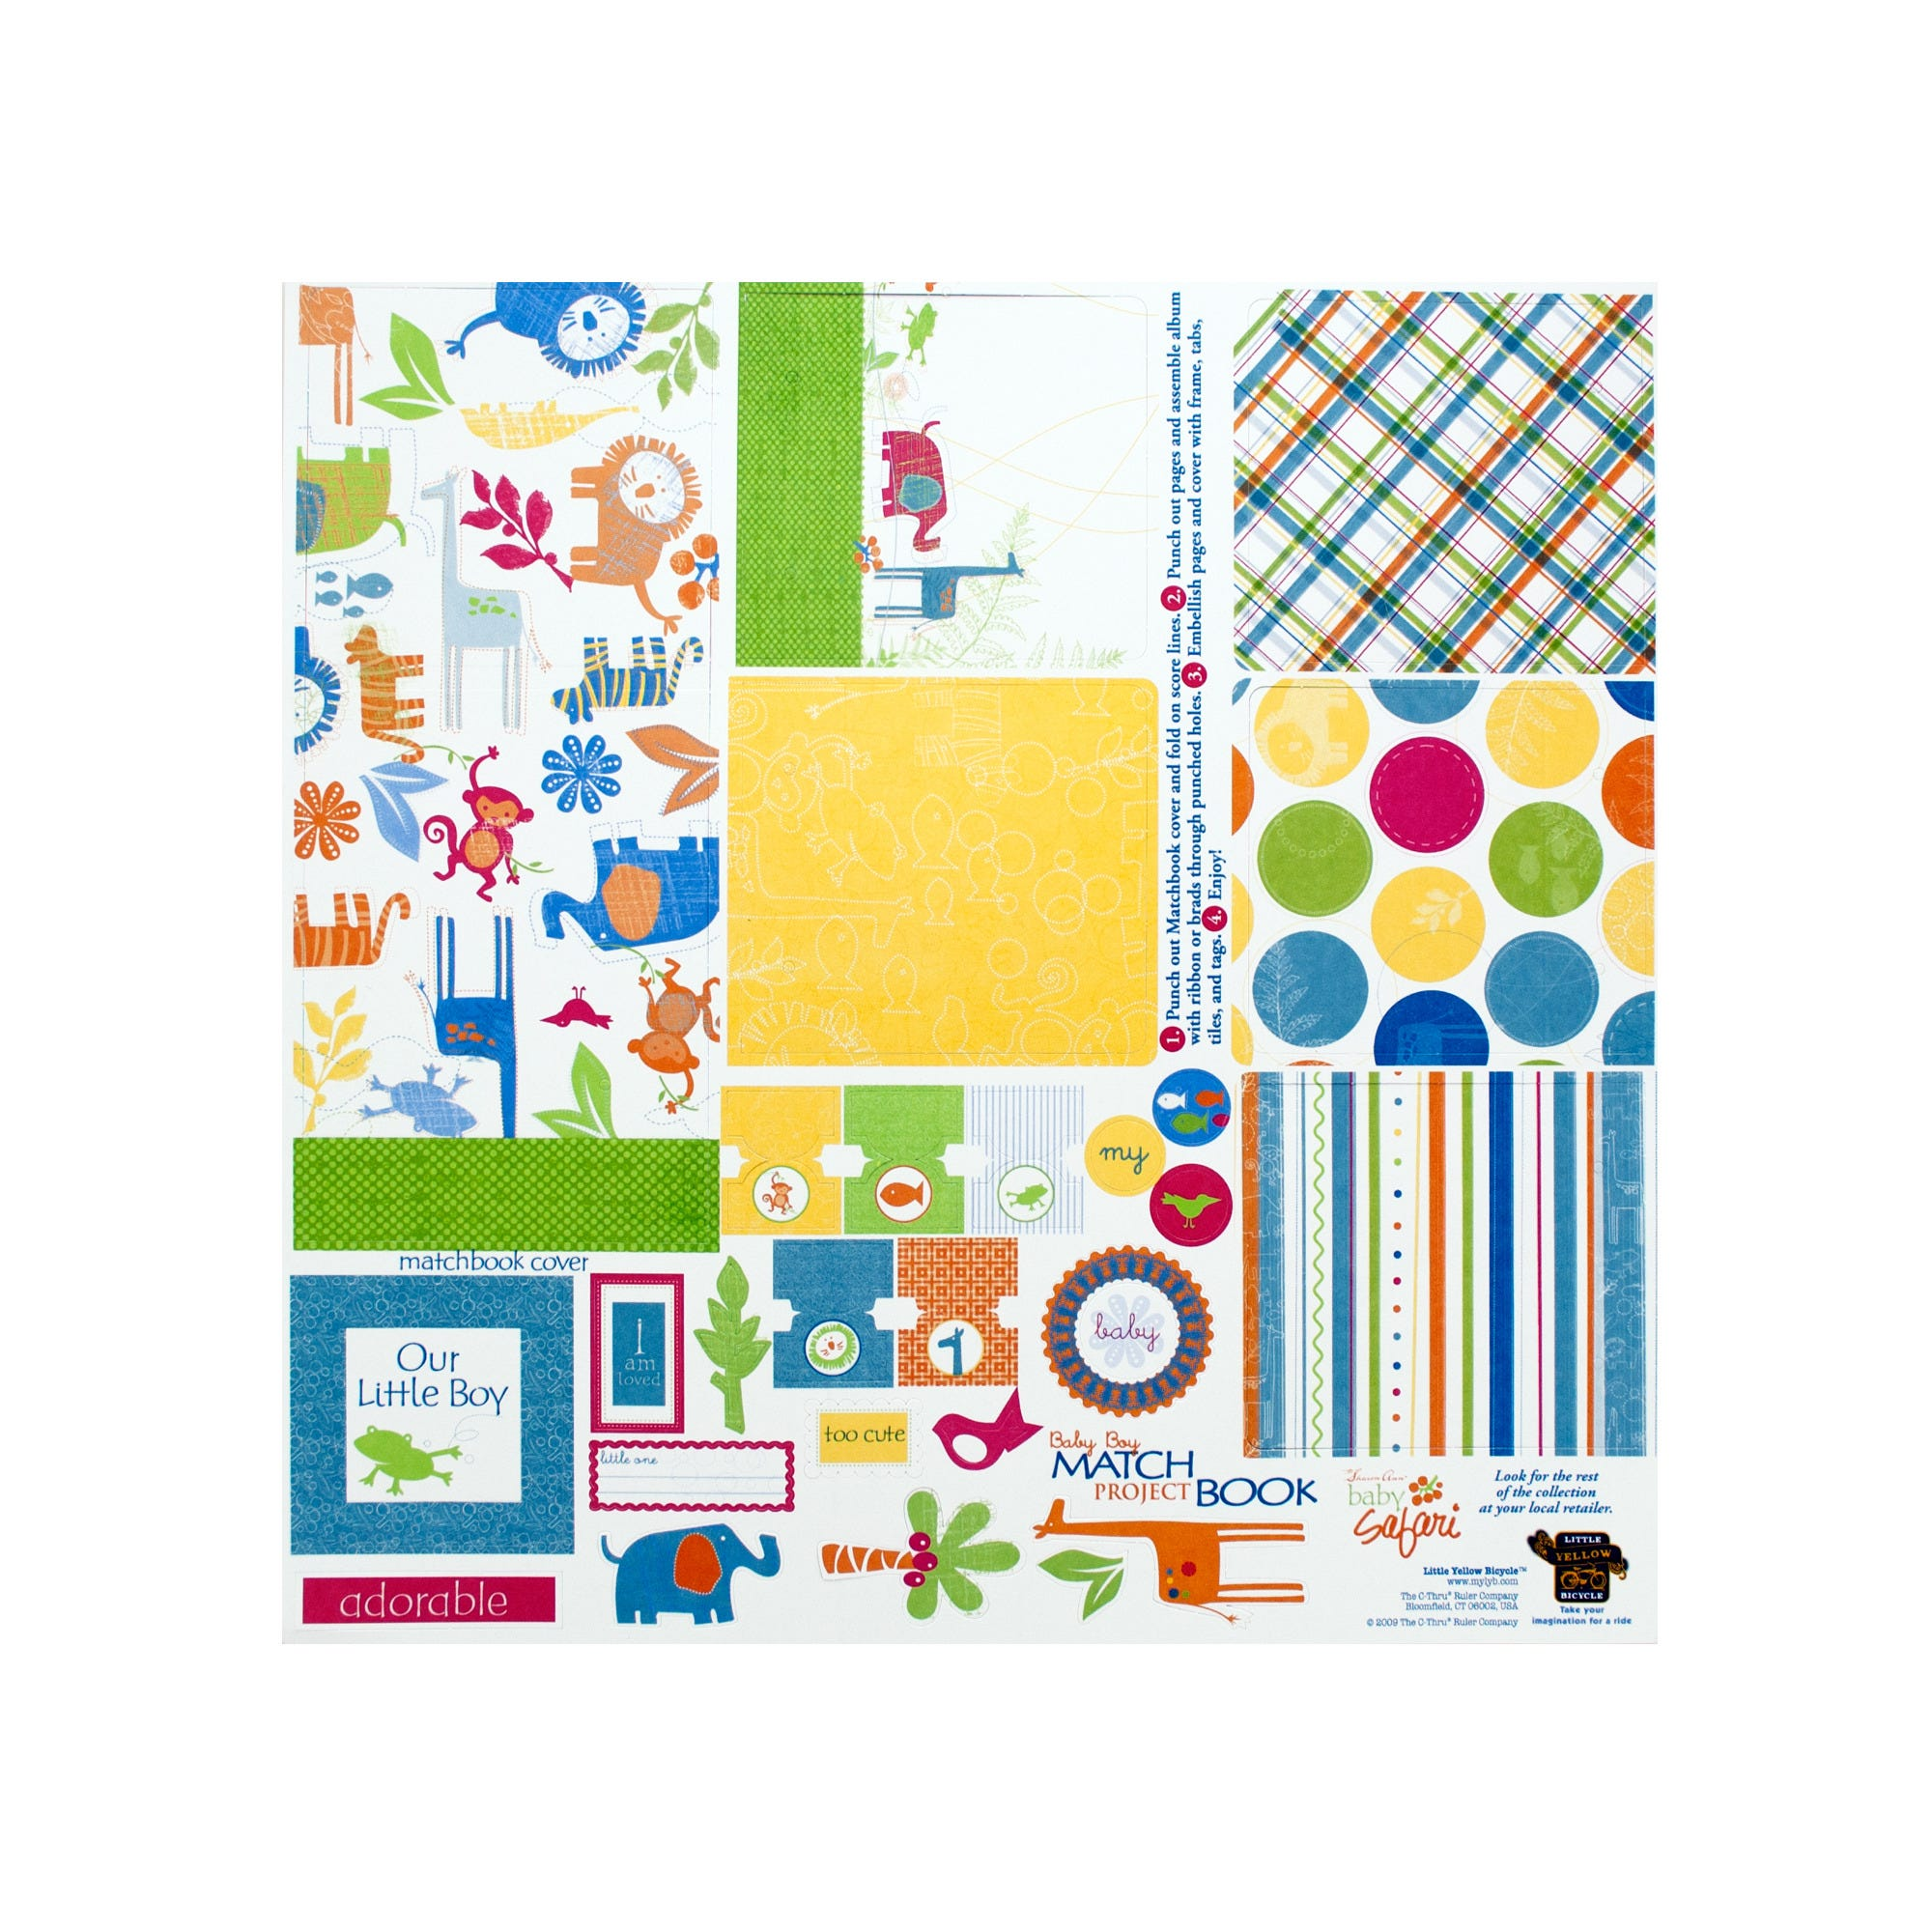 Wholesale album now available at wholesale central items 1 40 baby boy matchbook album kit solutioingenieria Gallery